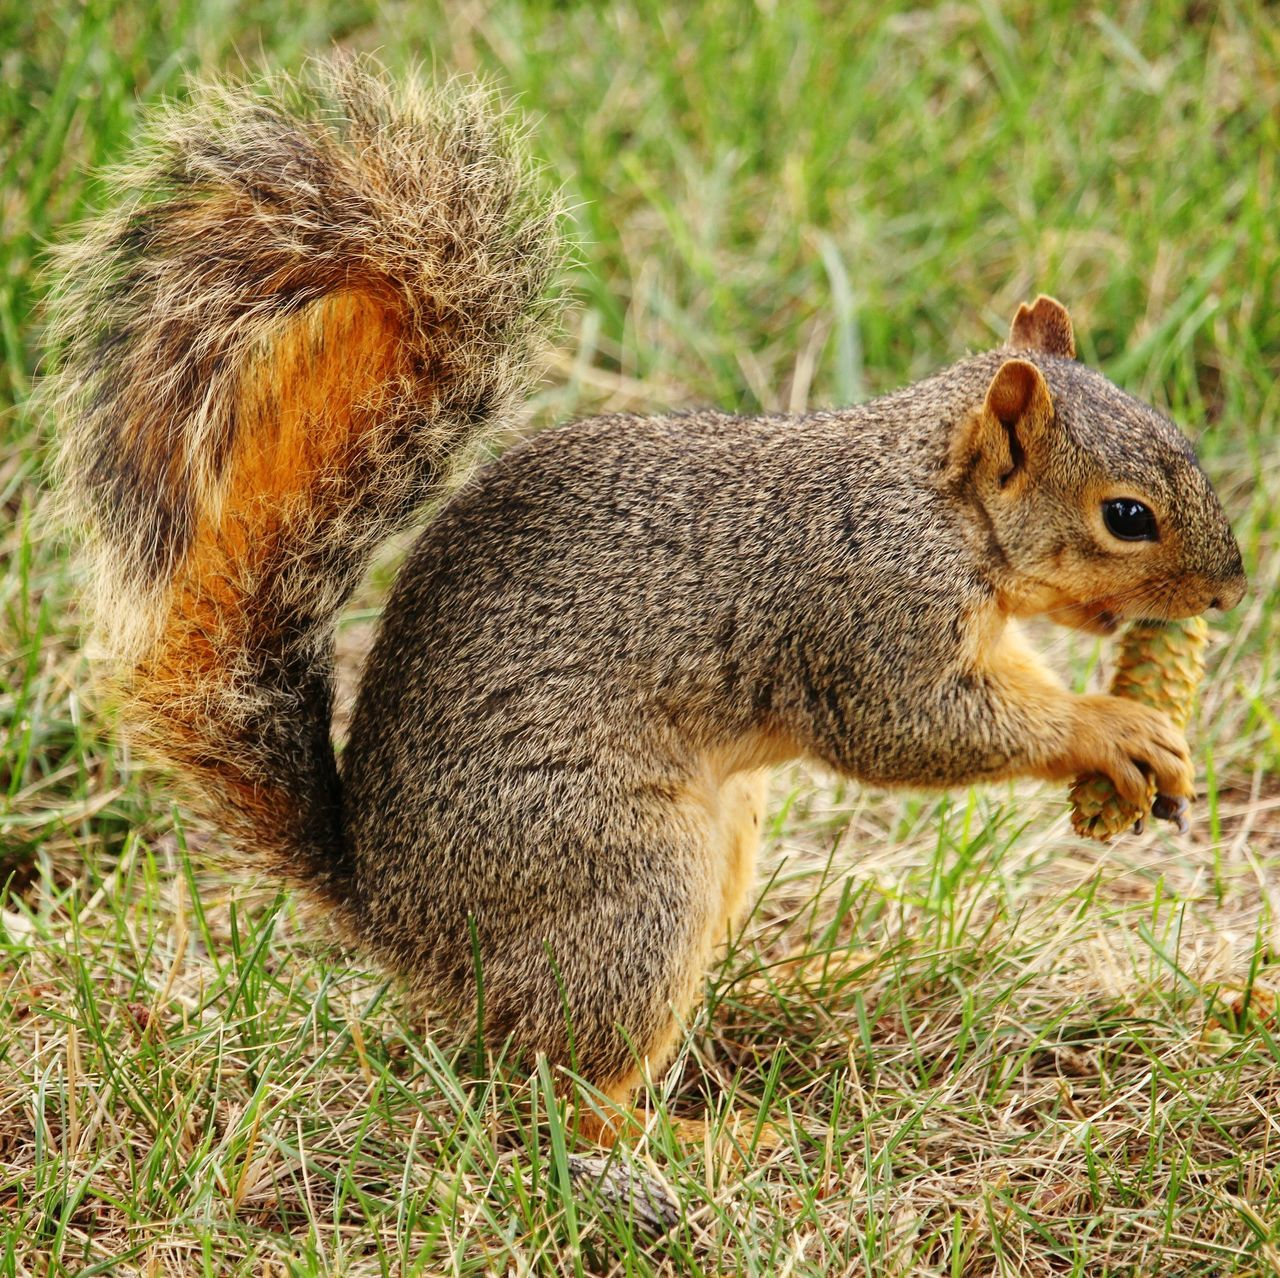 grass, field, animals in the wild, one animal, mammal, no people, nature, animal themes, squirrel, outdoors, day, close-up